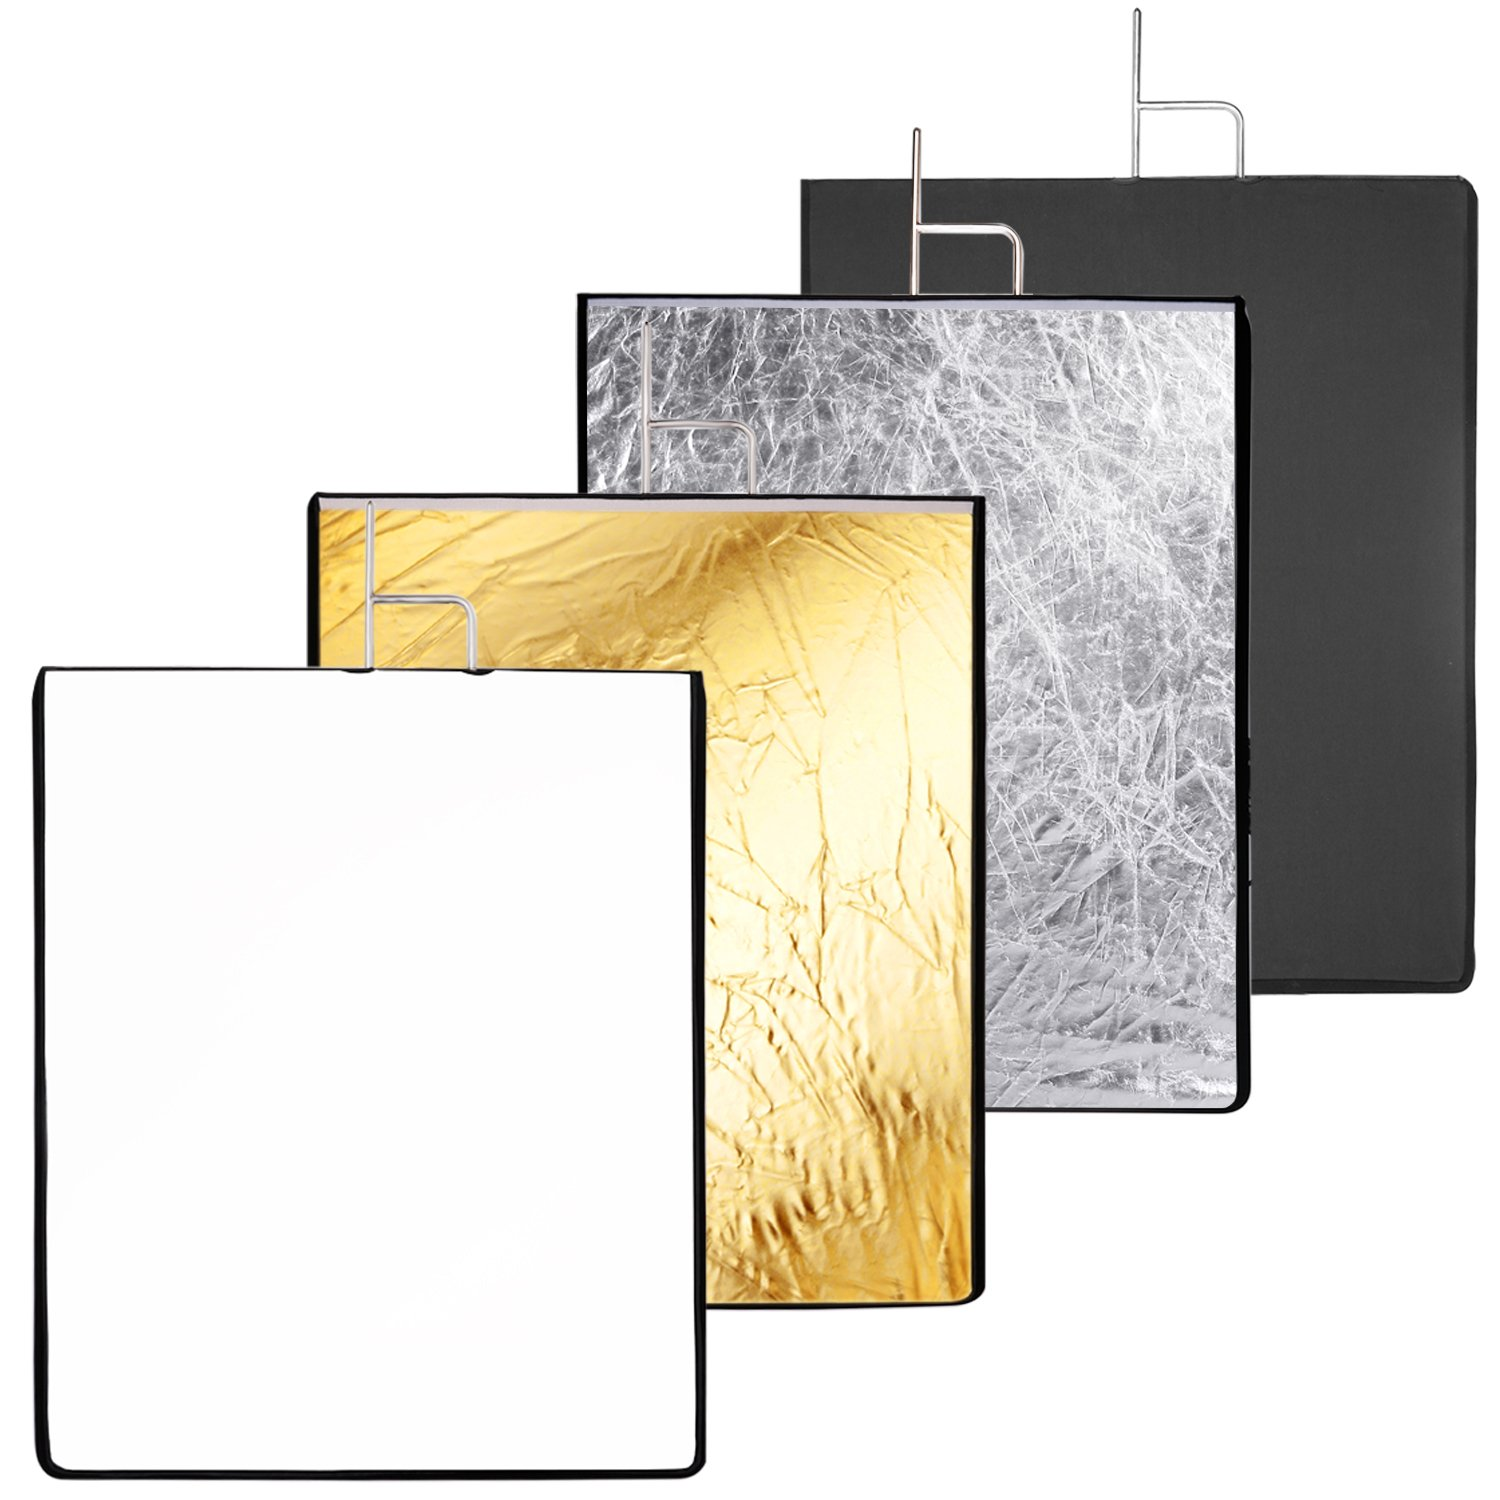 Neewer 30x36 inches 4-in-1 Metal Flag Panel Set Reflector with Soft White, Black, Silver and Gold Cover Cloth for Photo Video Studio Photography by Neewer